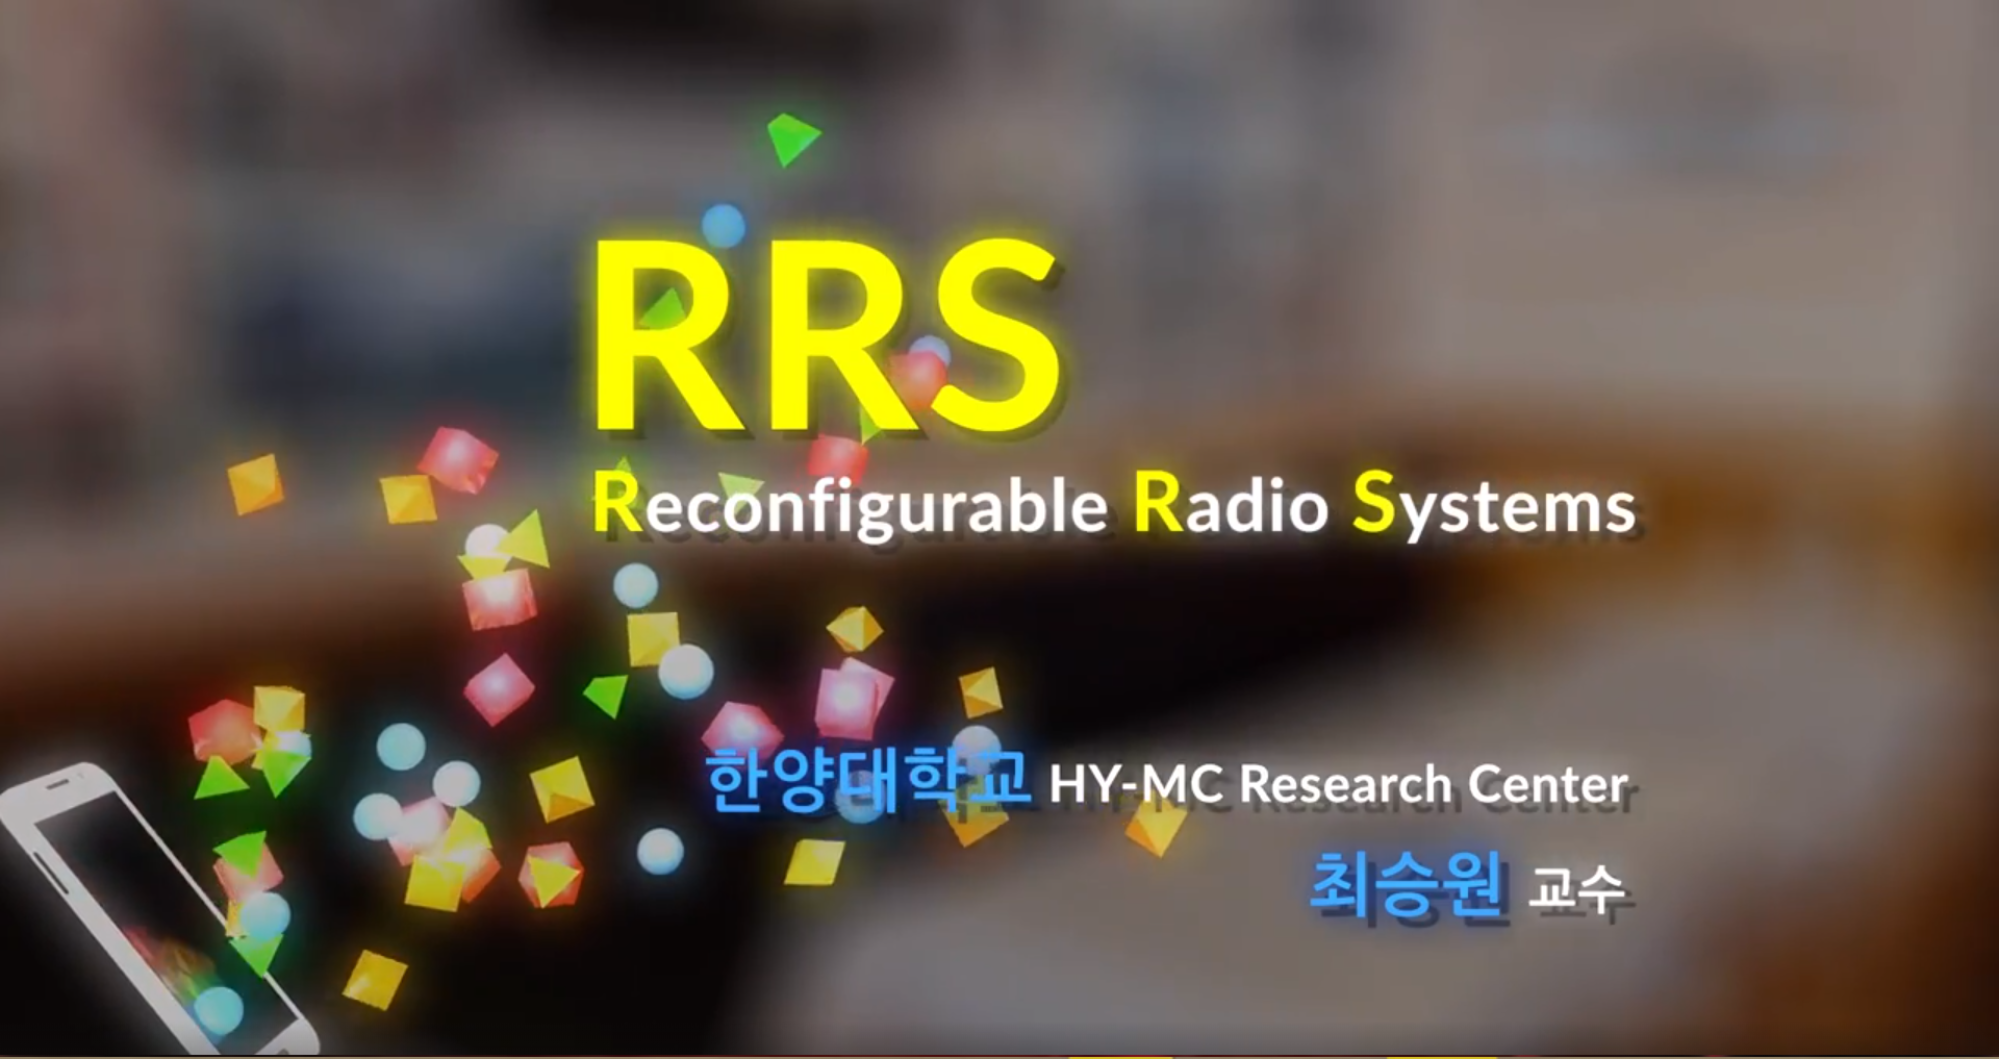 [테크블랙홀] Reconfigurable Radio System(RPS)-한양대학교